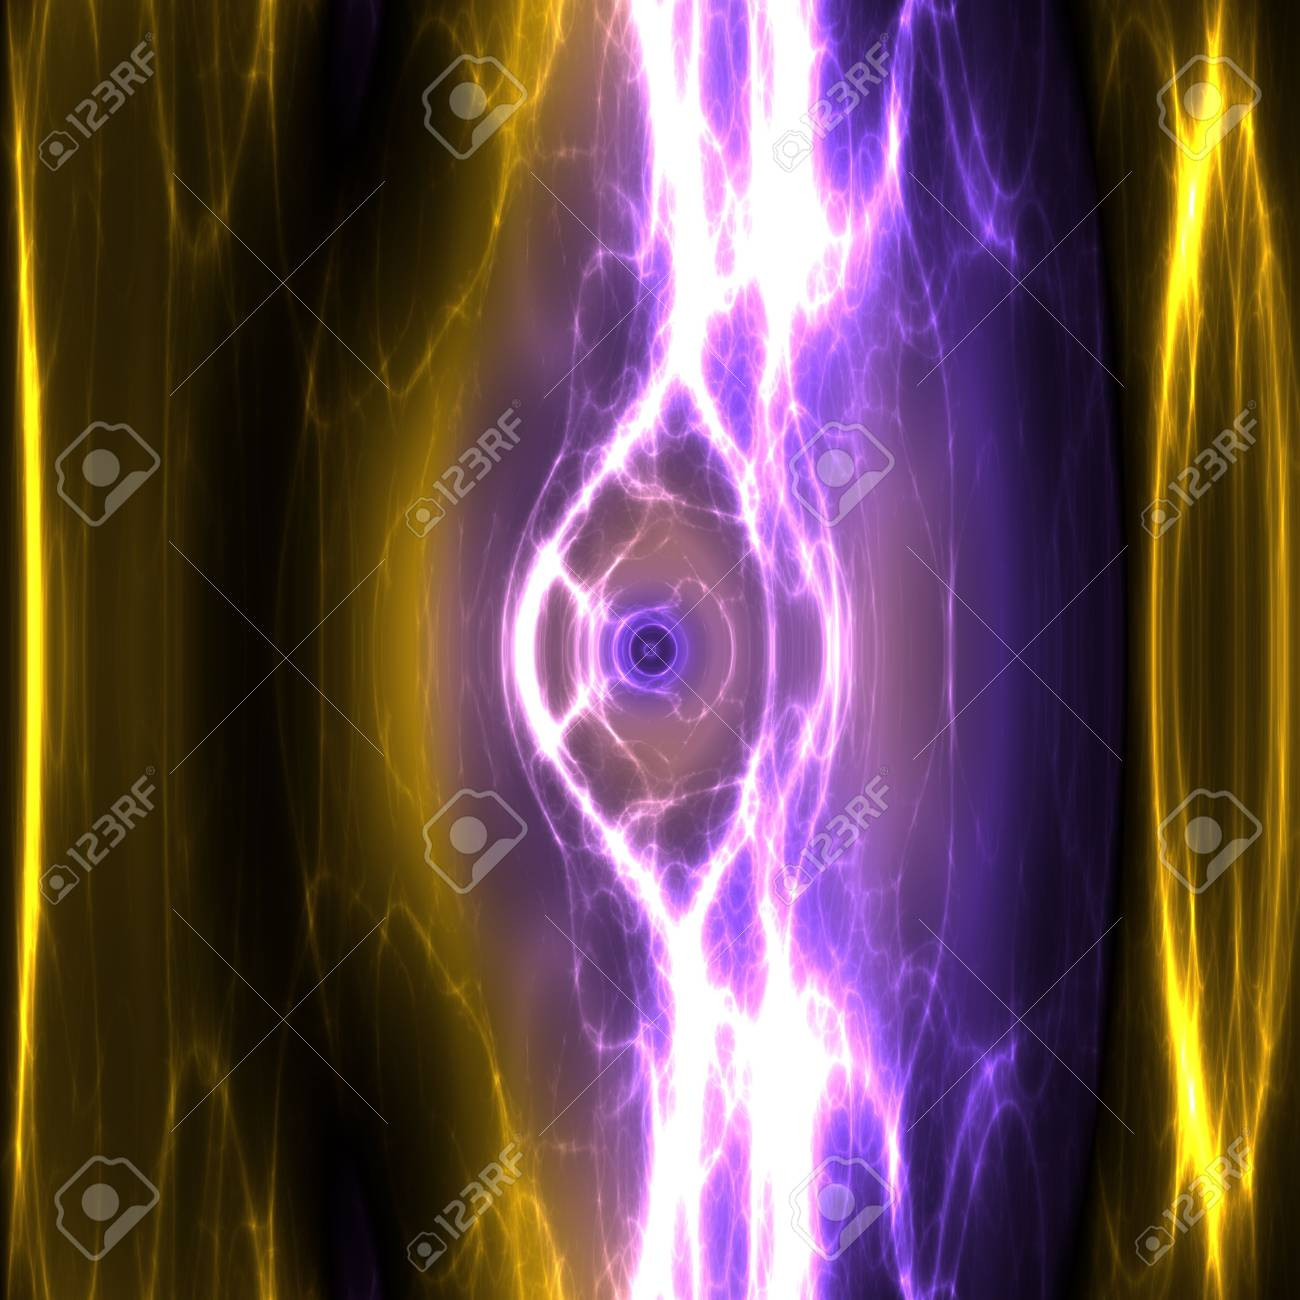 Swirly wavy circular flowing energy and colors, abstract illustration Stock Illustration - 5560475